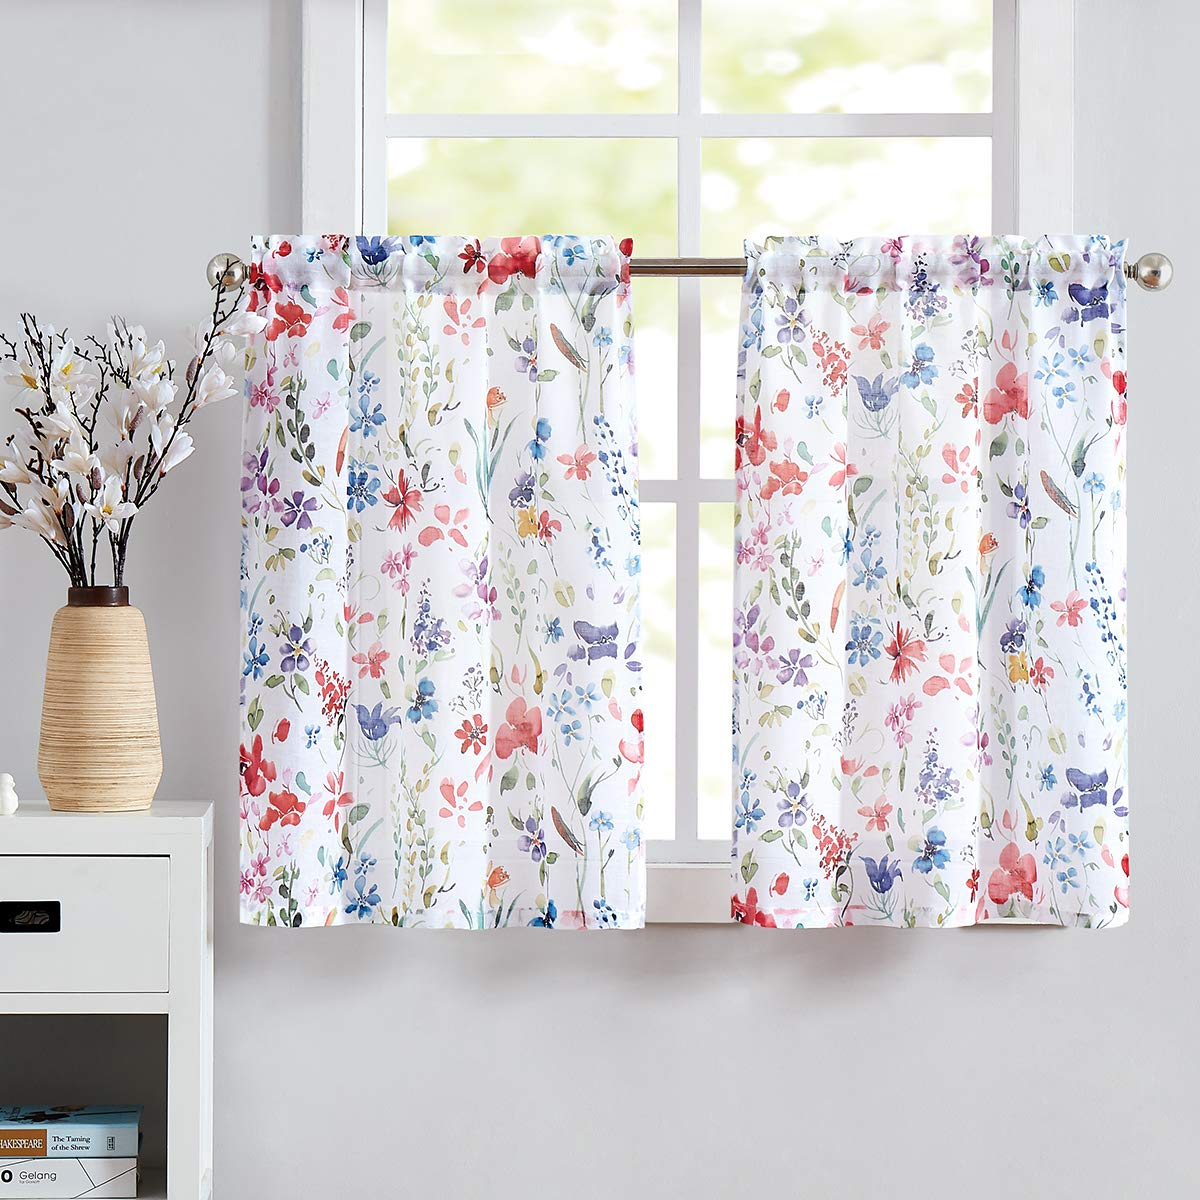 "Fragrantex Printed Kitchen Tier Curtains 36"" Sheer Café Curtains Linen Cotton-Like Tiers Multi-Color Short Half Window Curtain Set for Bathroom 28"" w x 2 Panels"